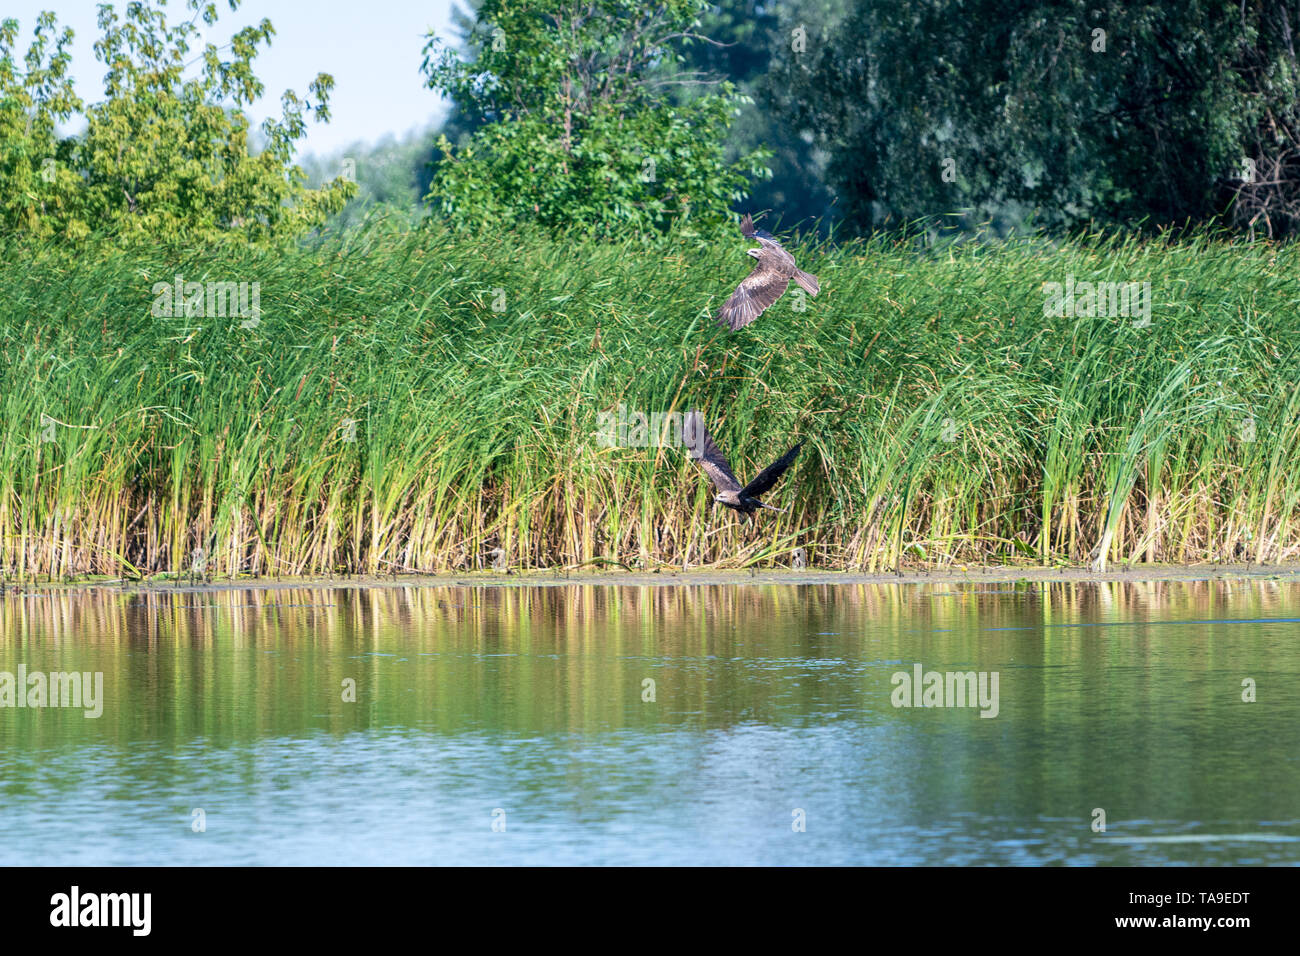 Hunting a pair of common Buzzard hawk (buteo buteo). The hawk preys on small fish. - Stock Image